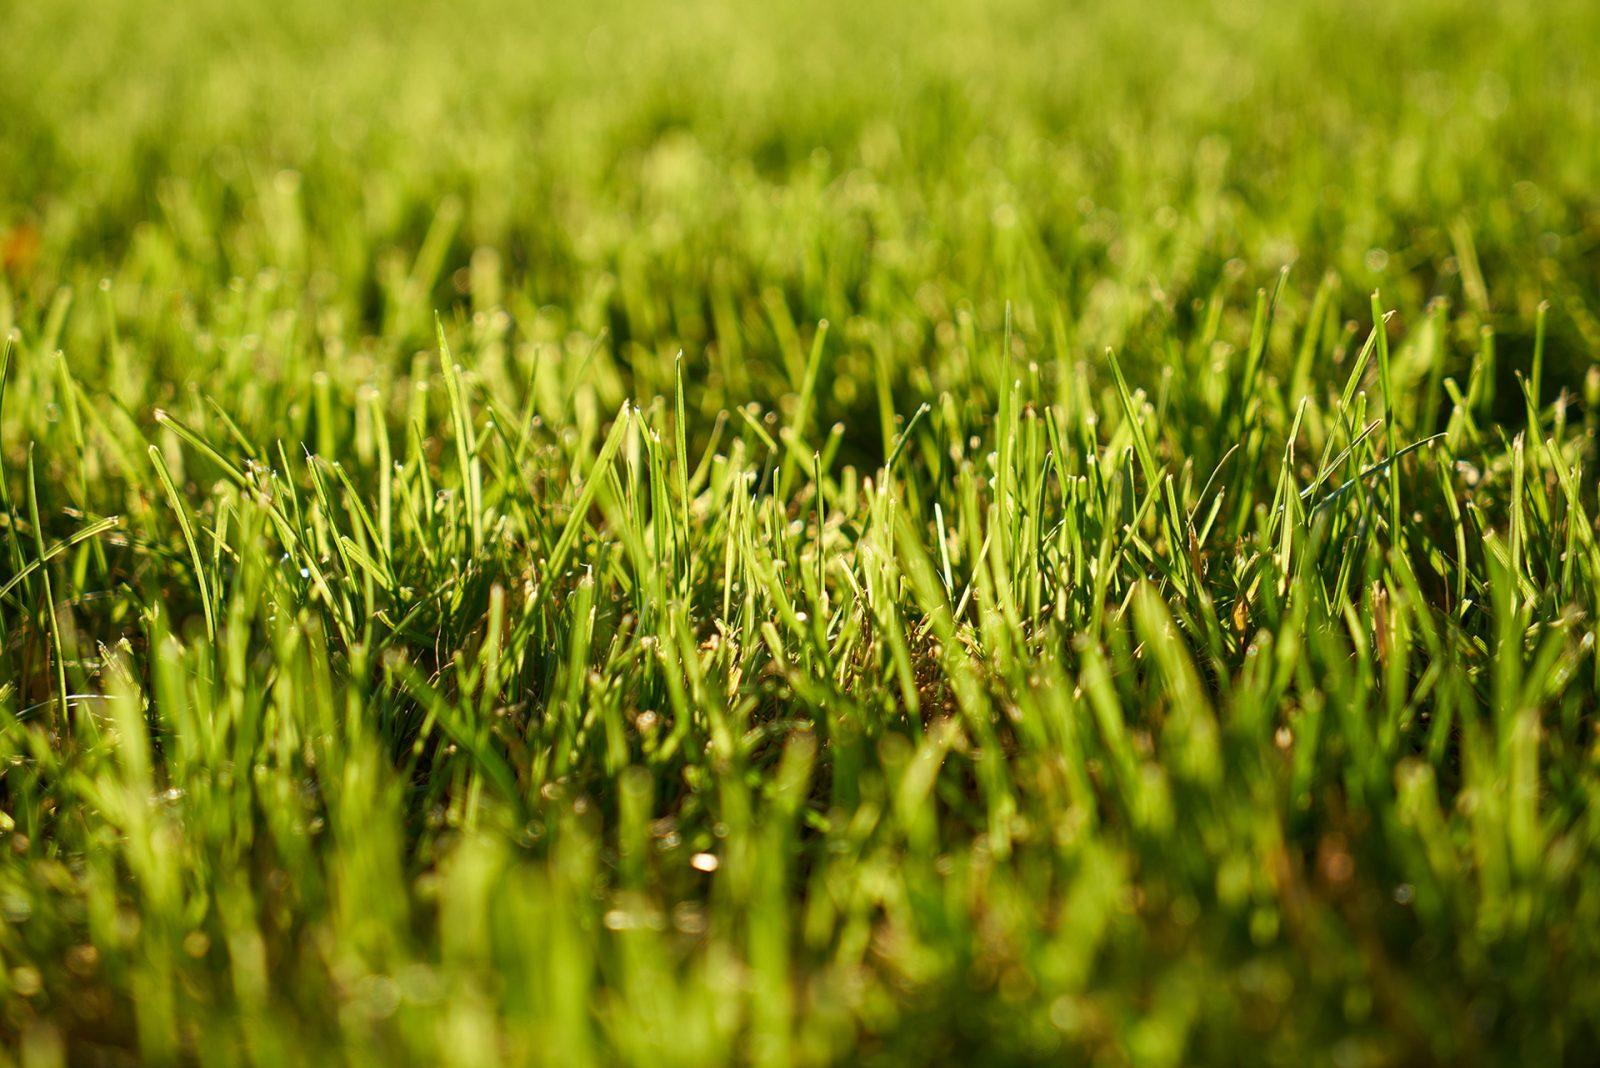 Lawn Care Alabama - Grass